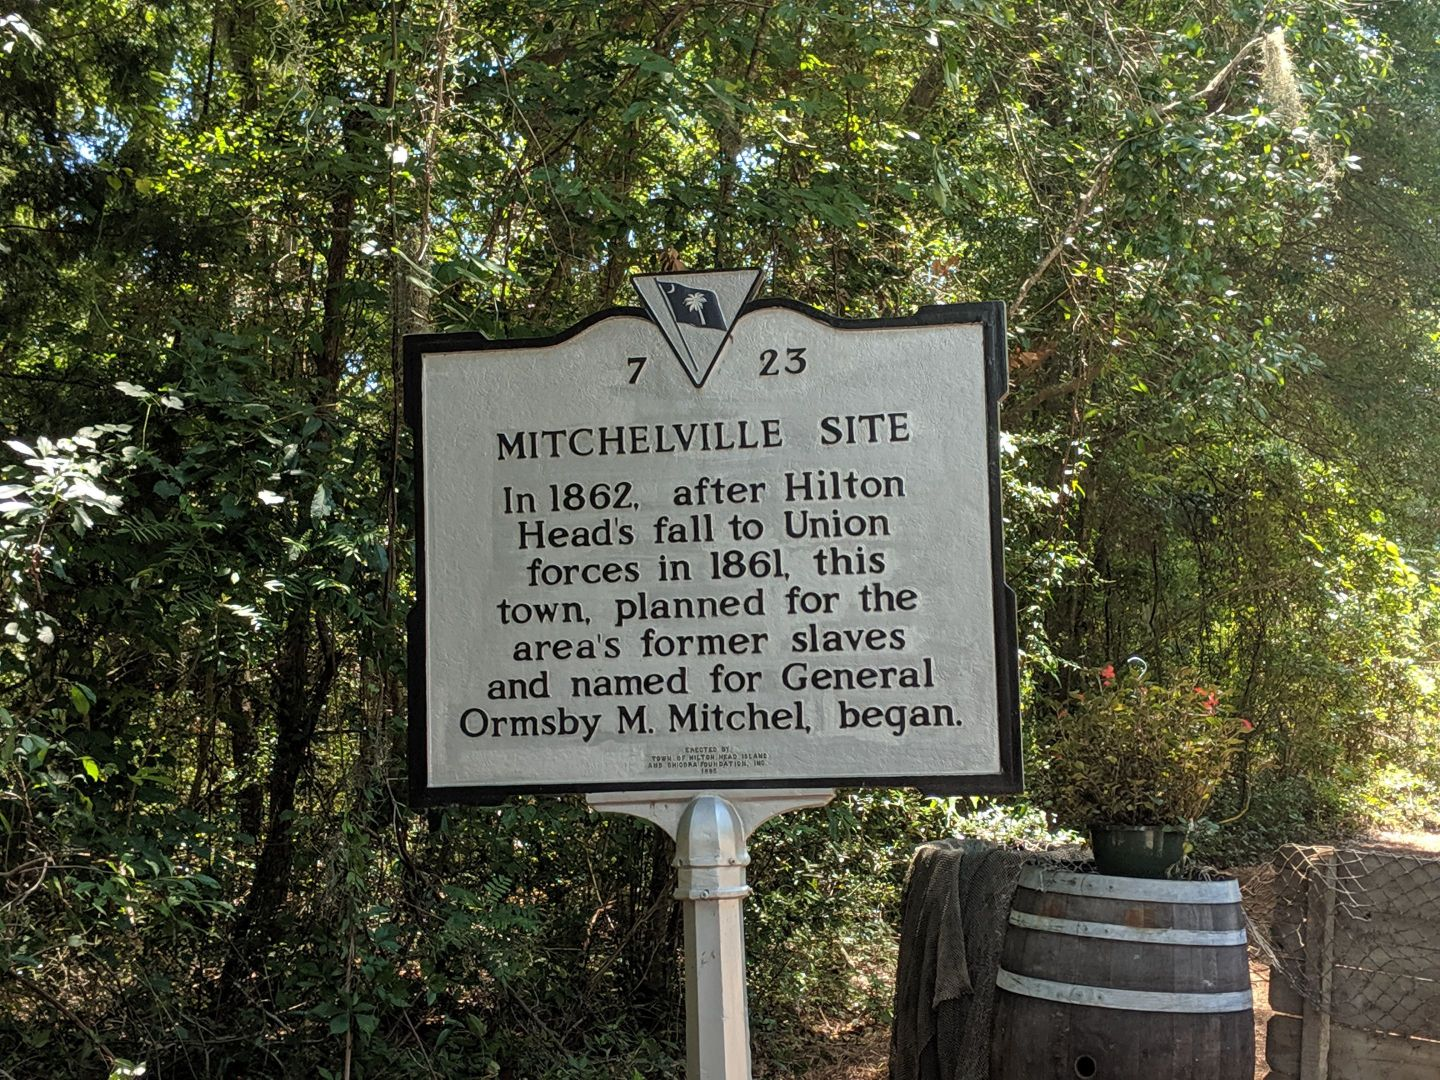 IMG_20190615_143903-1-1440x1080 Mitchellville Juneteenth: Family Fun Through Celebrating Black Heritage in Hilton Head